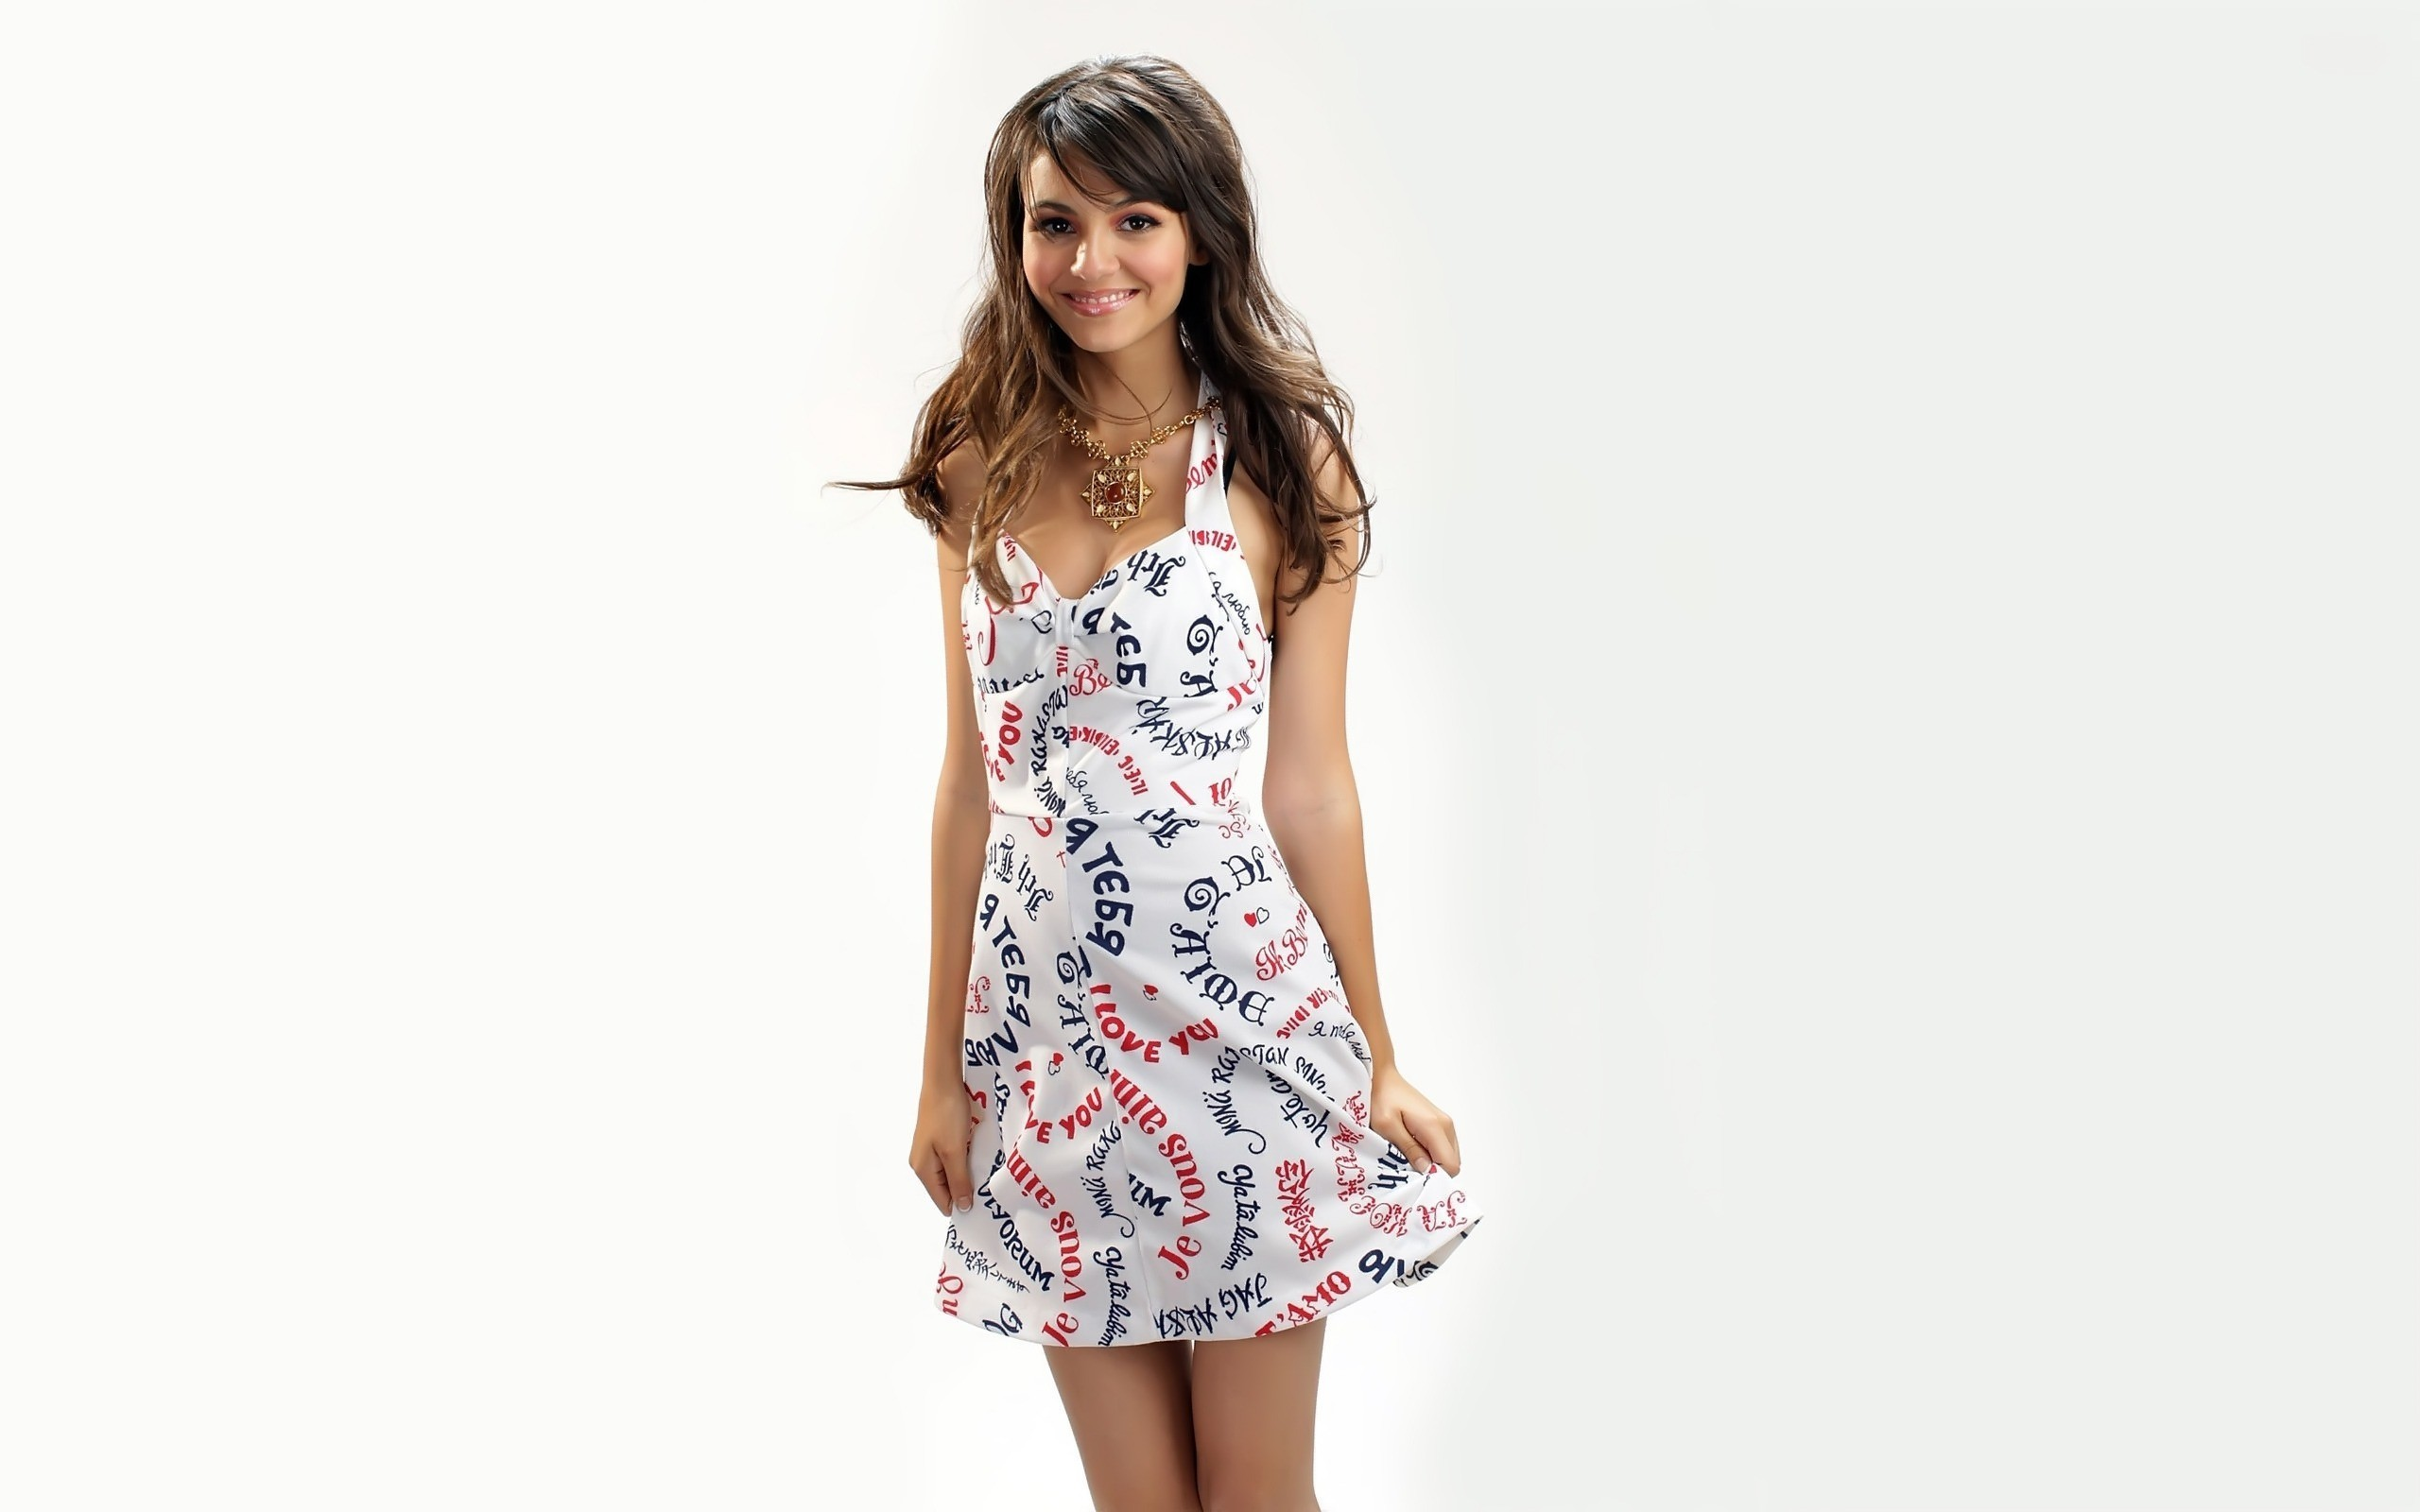 woman dress white background victoria justice